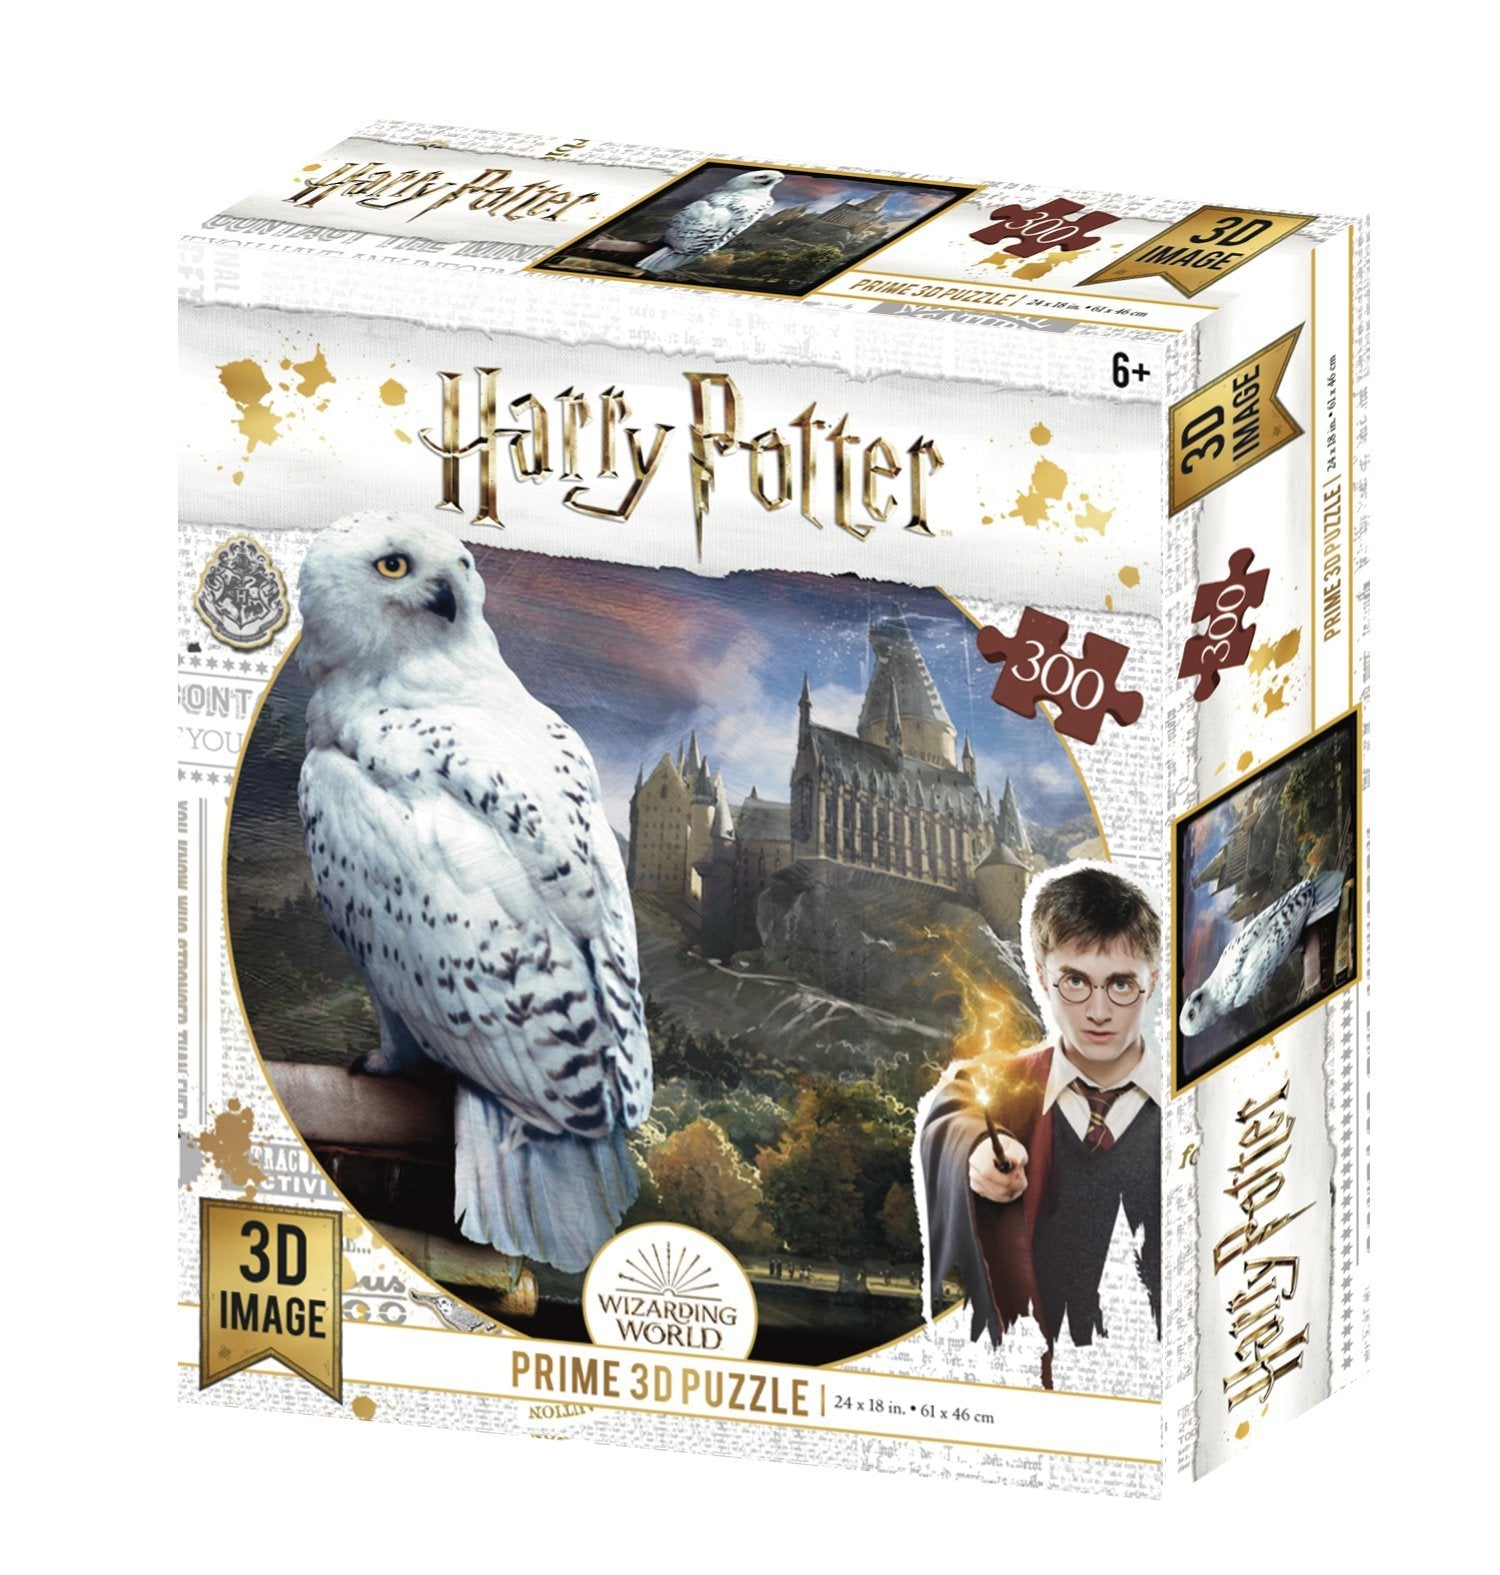 Lenticular 3D Puzzle: Harry Potter Hedwig - 4DPuzz - 4DPuzz